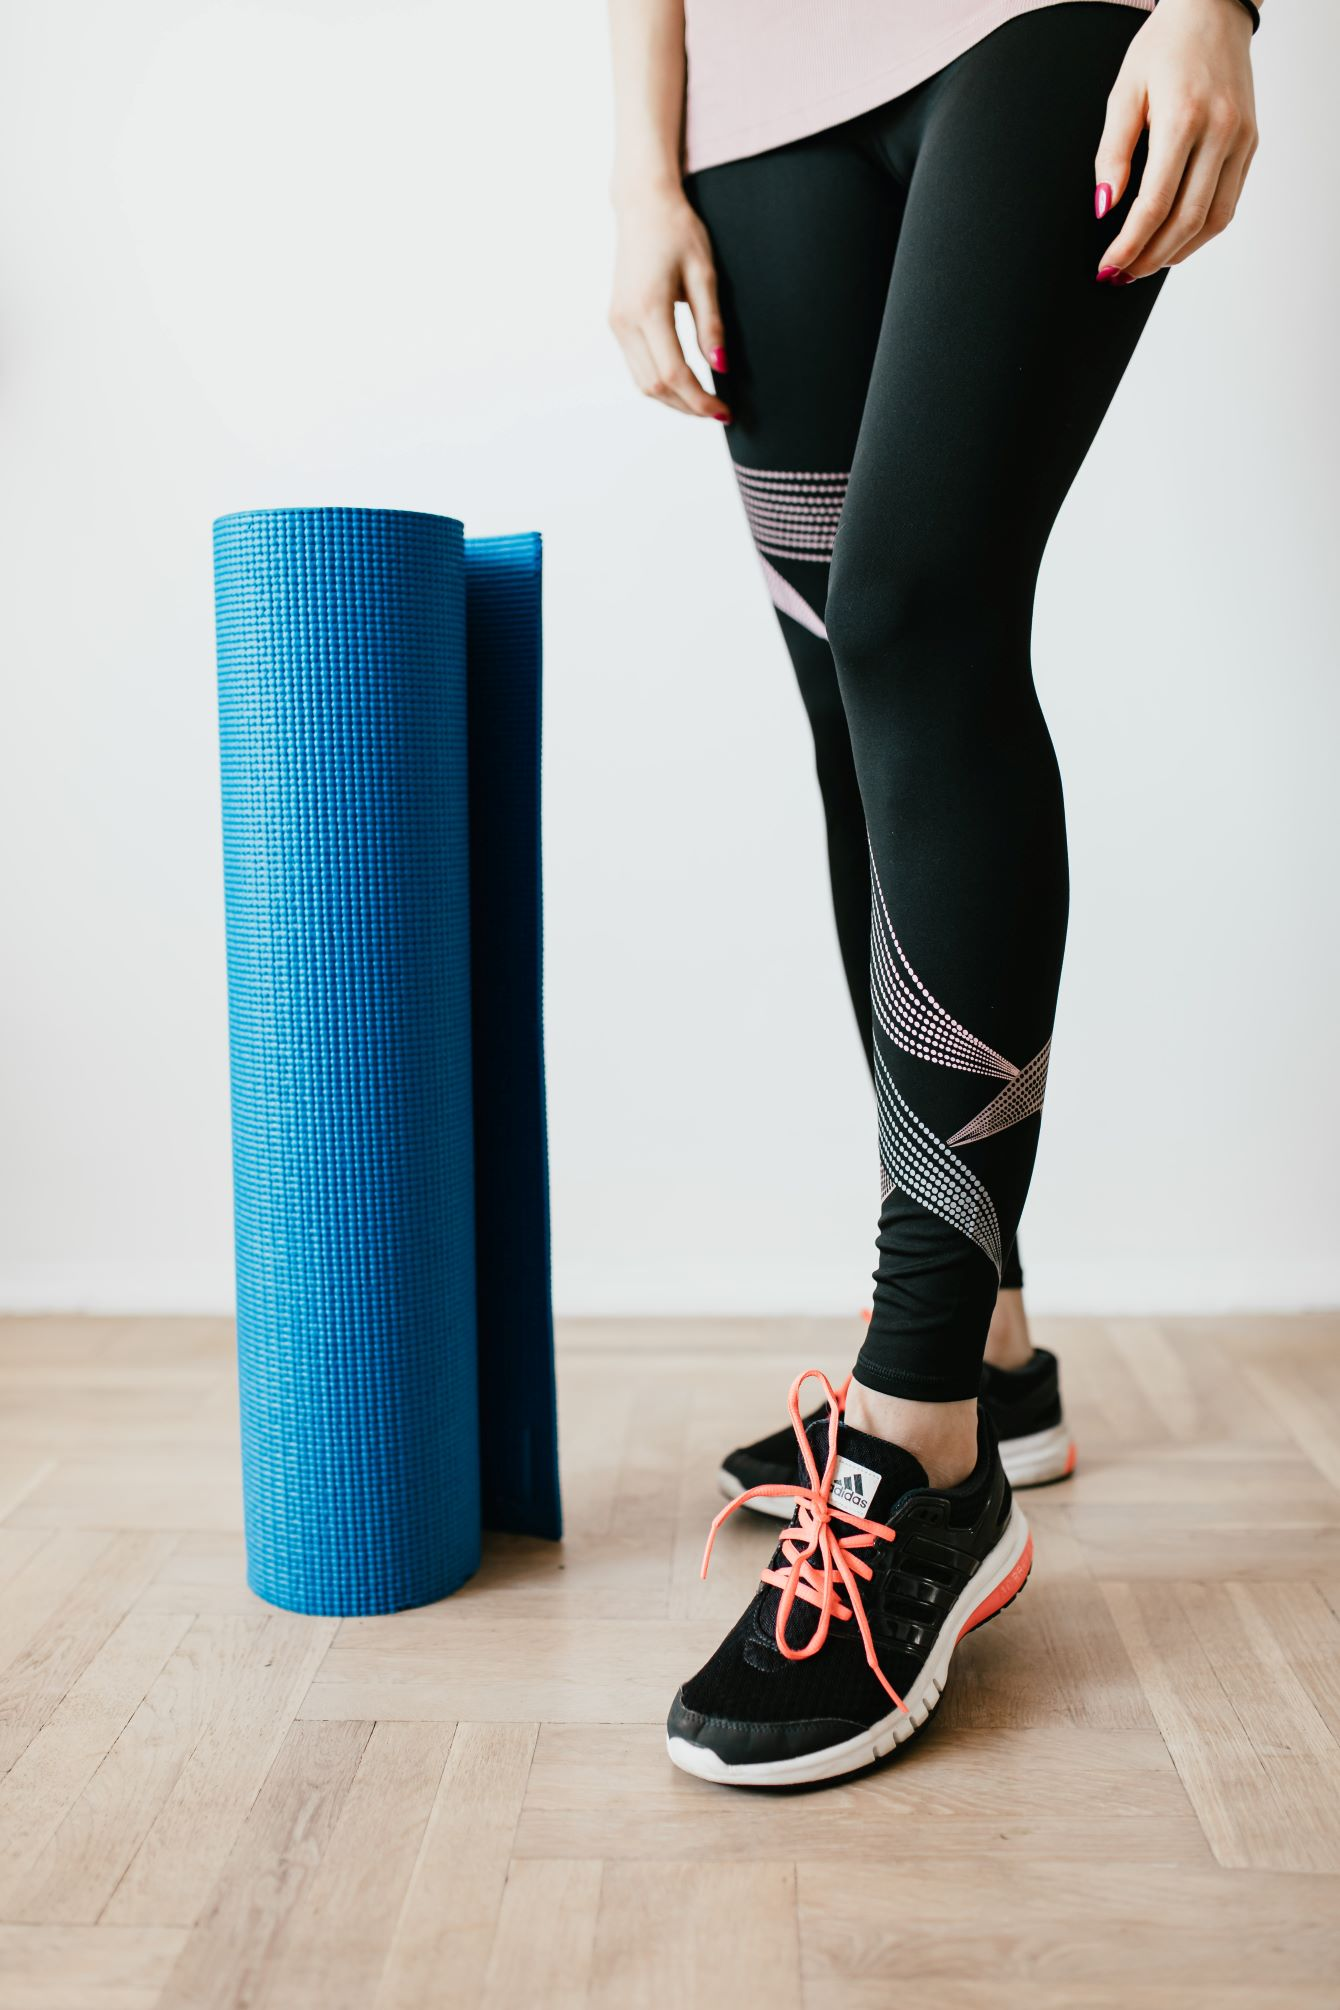 Woman standing next to yoga mat in activewear